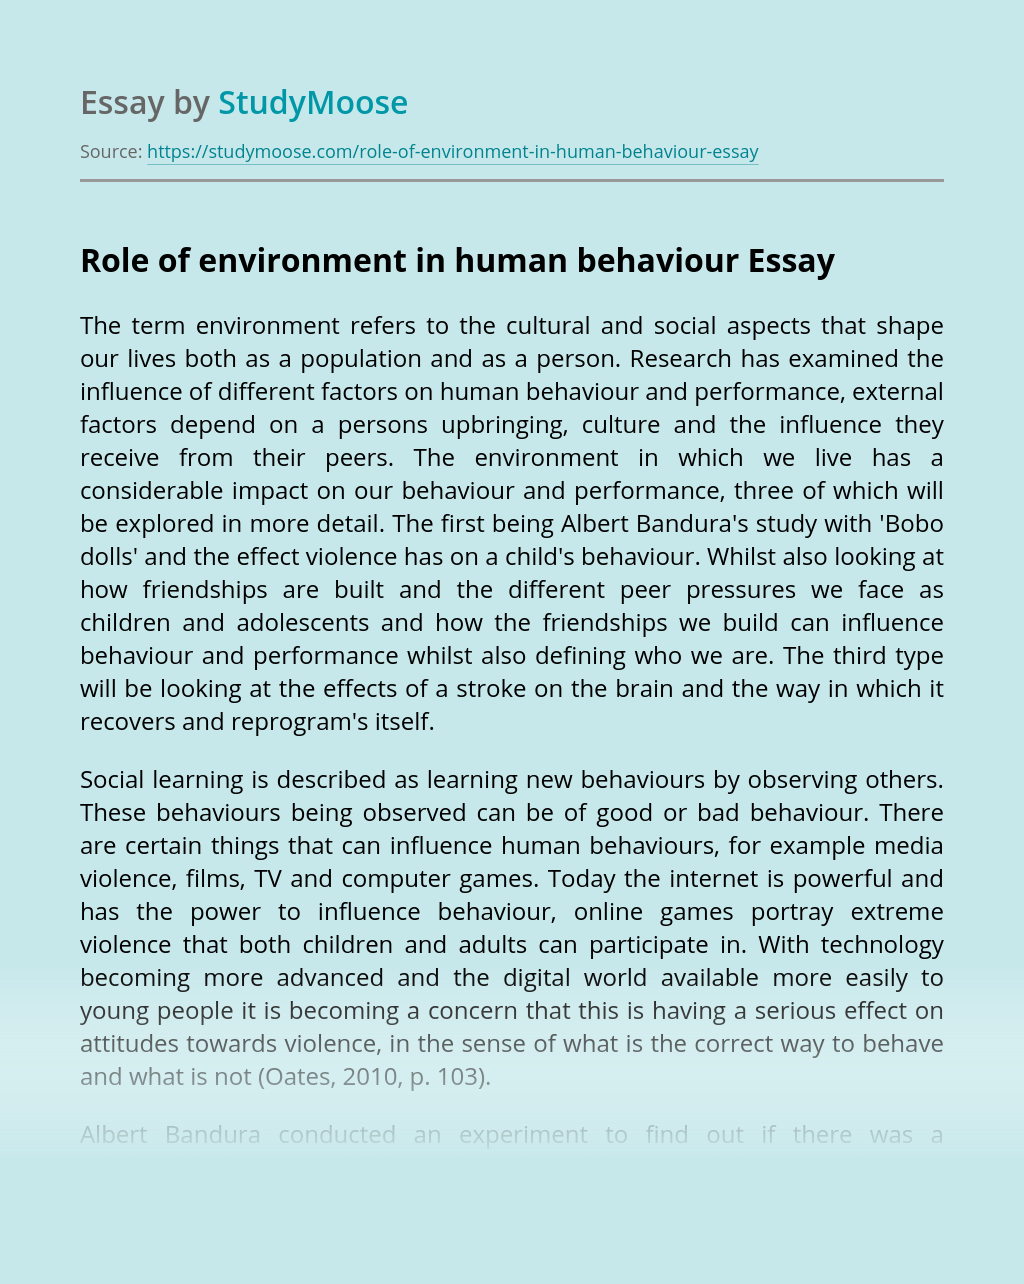 Role of environment in human behaviour